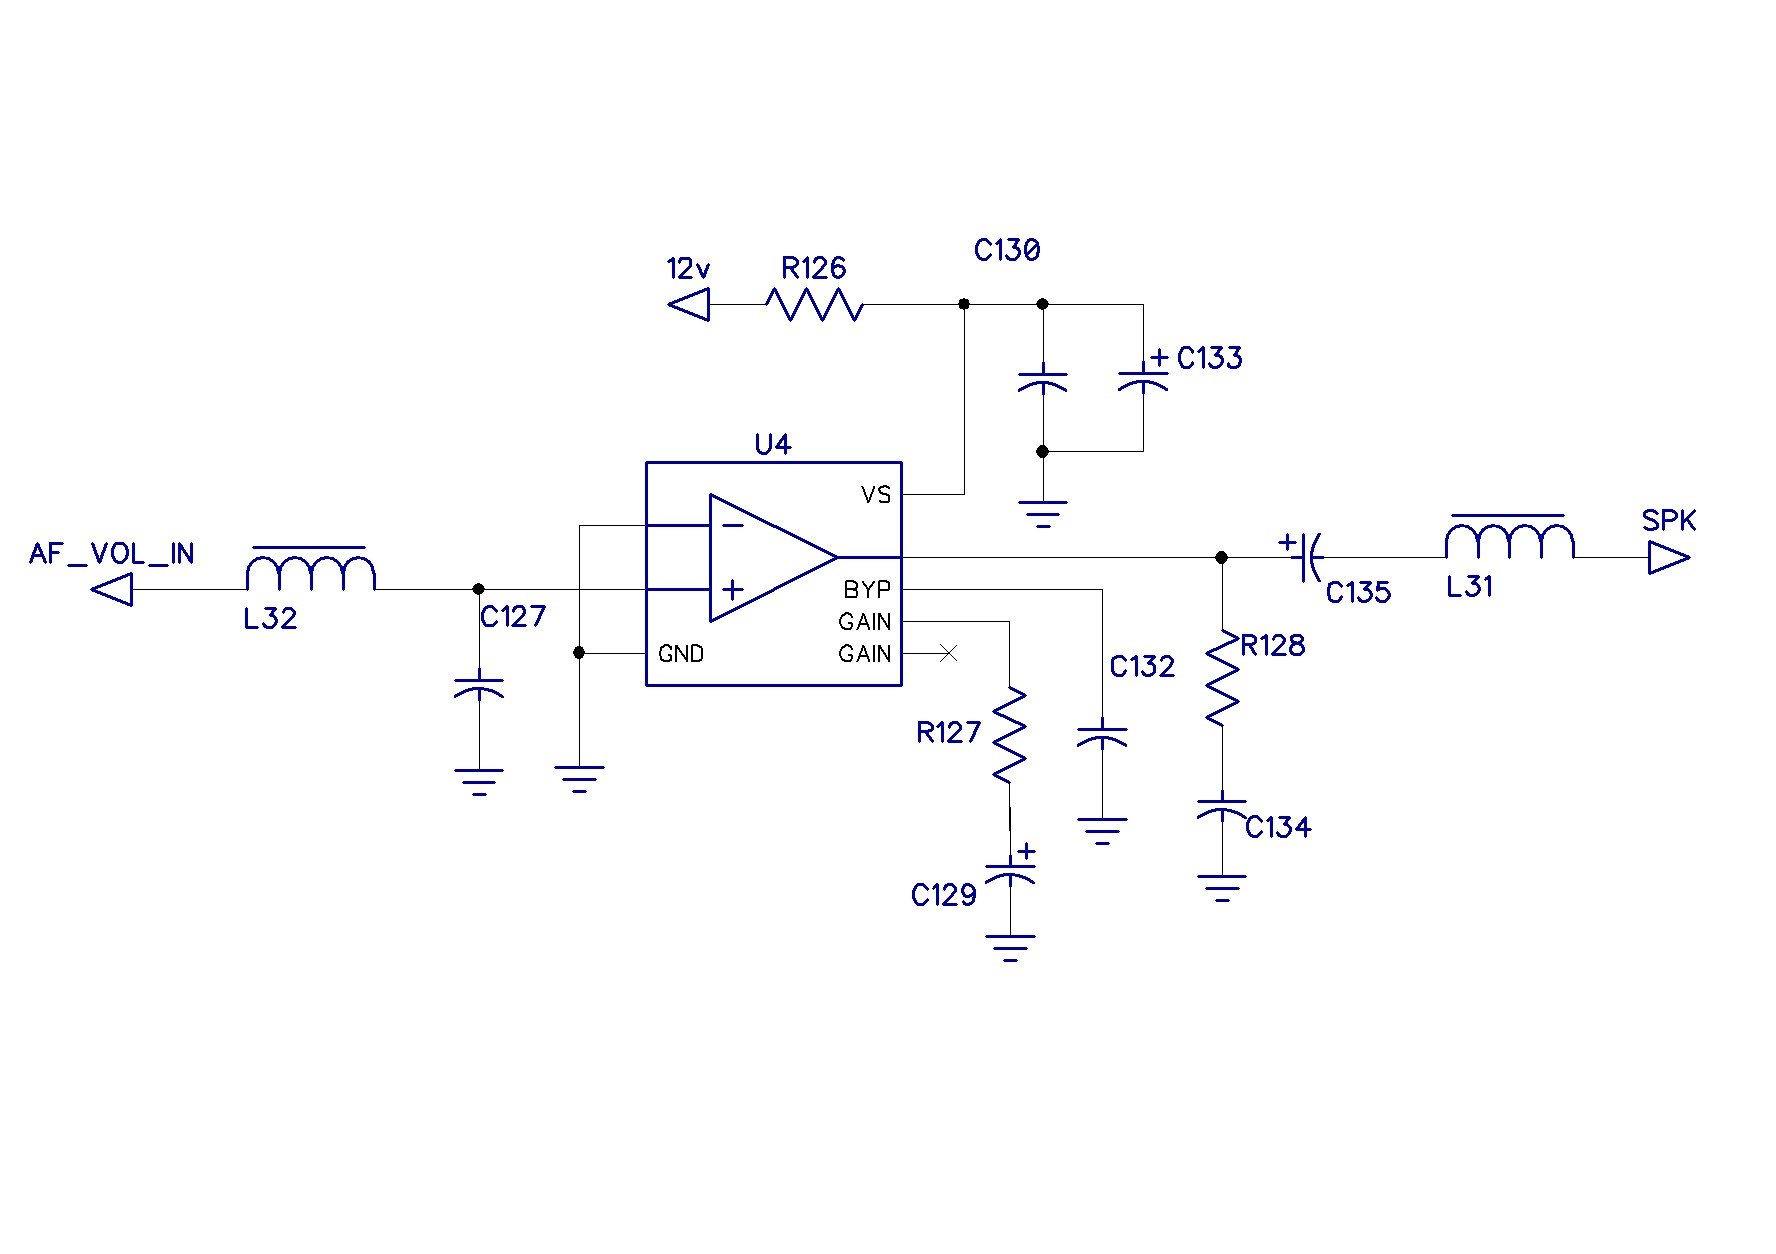 Qrpver Dc 3001 Schematic Further Low Pass Filter Circuit In Addition High Frequency Amplifier Made On The Chip Lm386